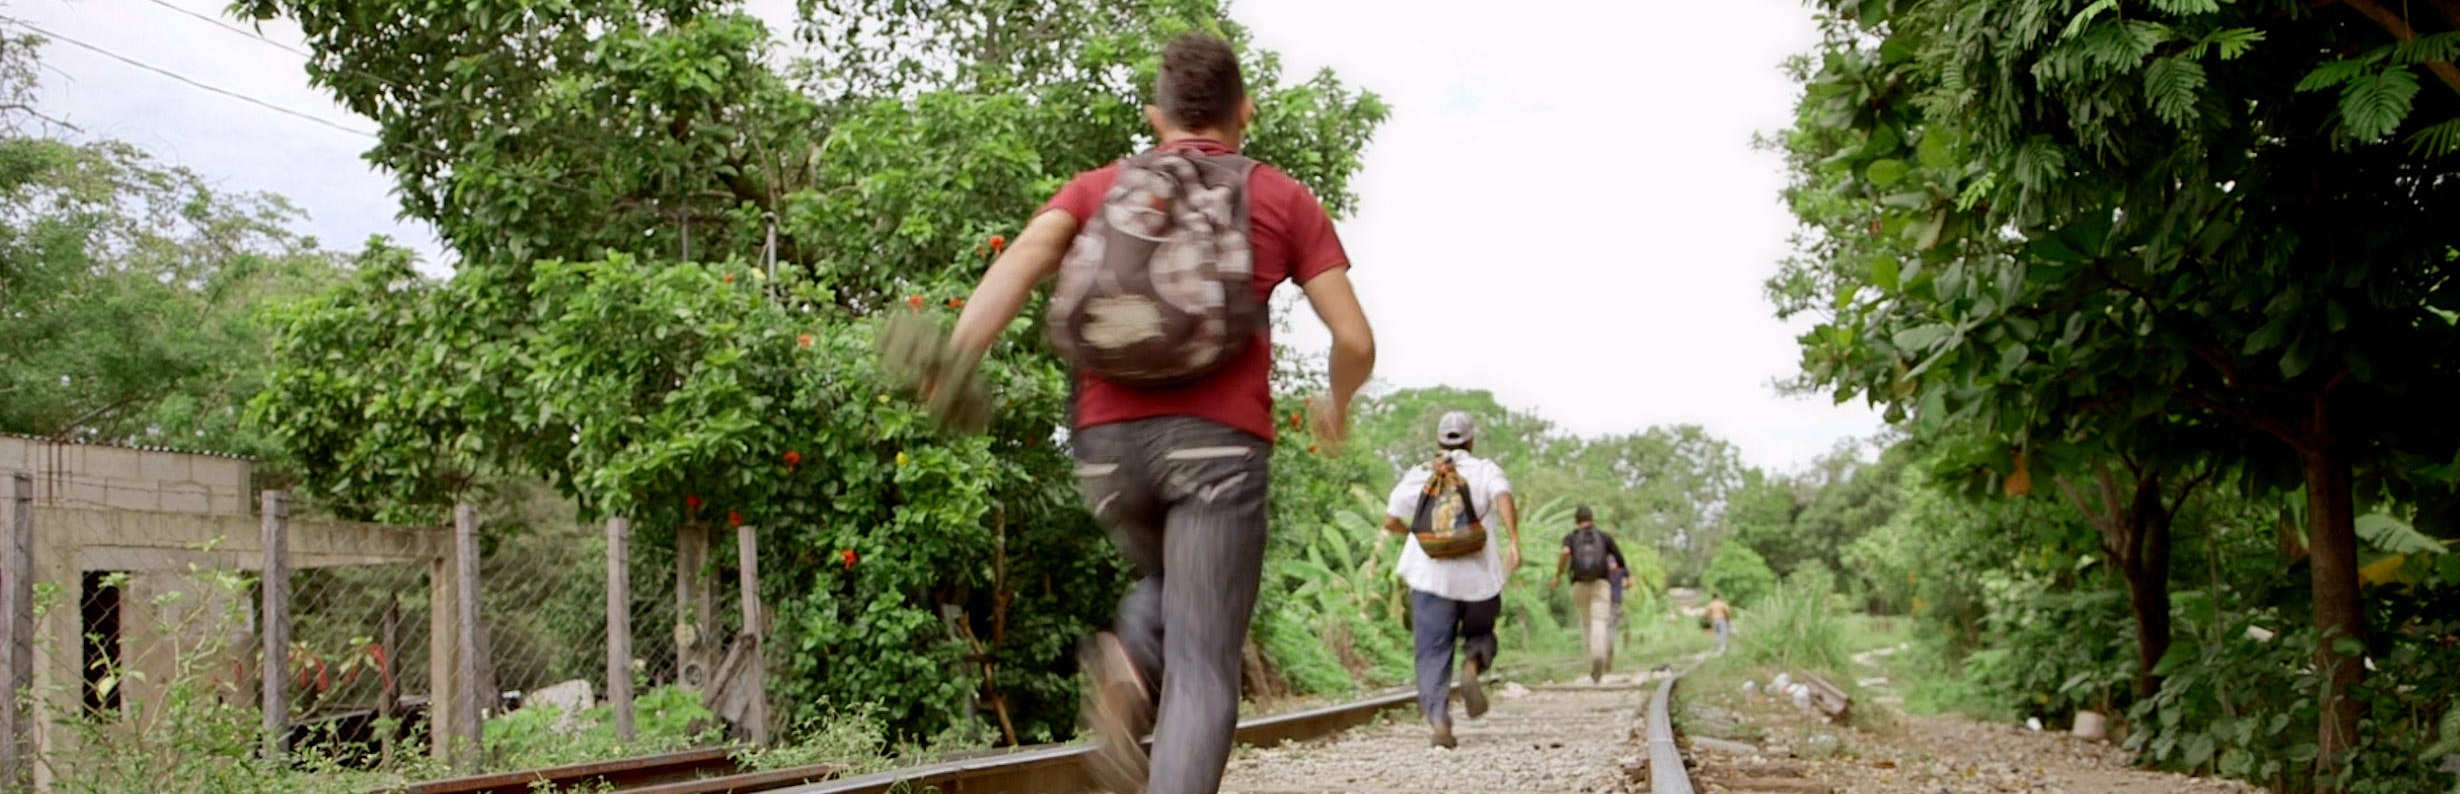 """BORDER SOUTH  (Raúl O. Paz Pastrana, USA/Mexico/Guatemala, 2019, 83 min.)  New York Premiere / Filmmaker in Attendance   Buy Tickets   Through a blend of visual anthropology and cinema verité, discover the story of the migrants along the 2,300-mile-long """"train north"""" through Central America. Anthropologist Jason De León follows the trail to understand what happens to the migrants who attempt the journey. He collects decaying artifacts lost along the way, allowing him to piece together the difficult lives of his subjects, and offering glimpses of the violence of the culture of immigration along the southwestern U.S. border.   Friday, October 18, 7:30pm"""